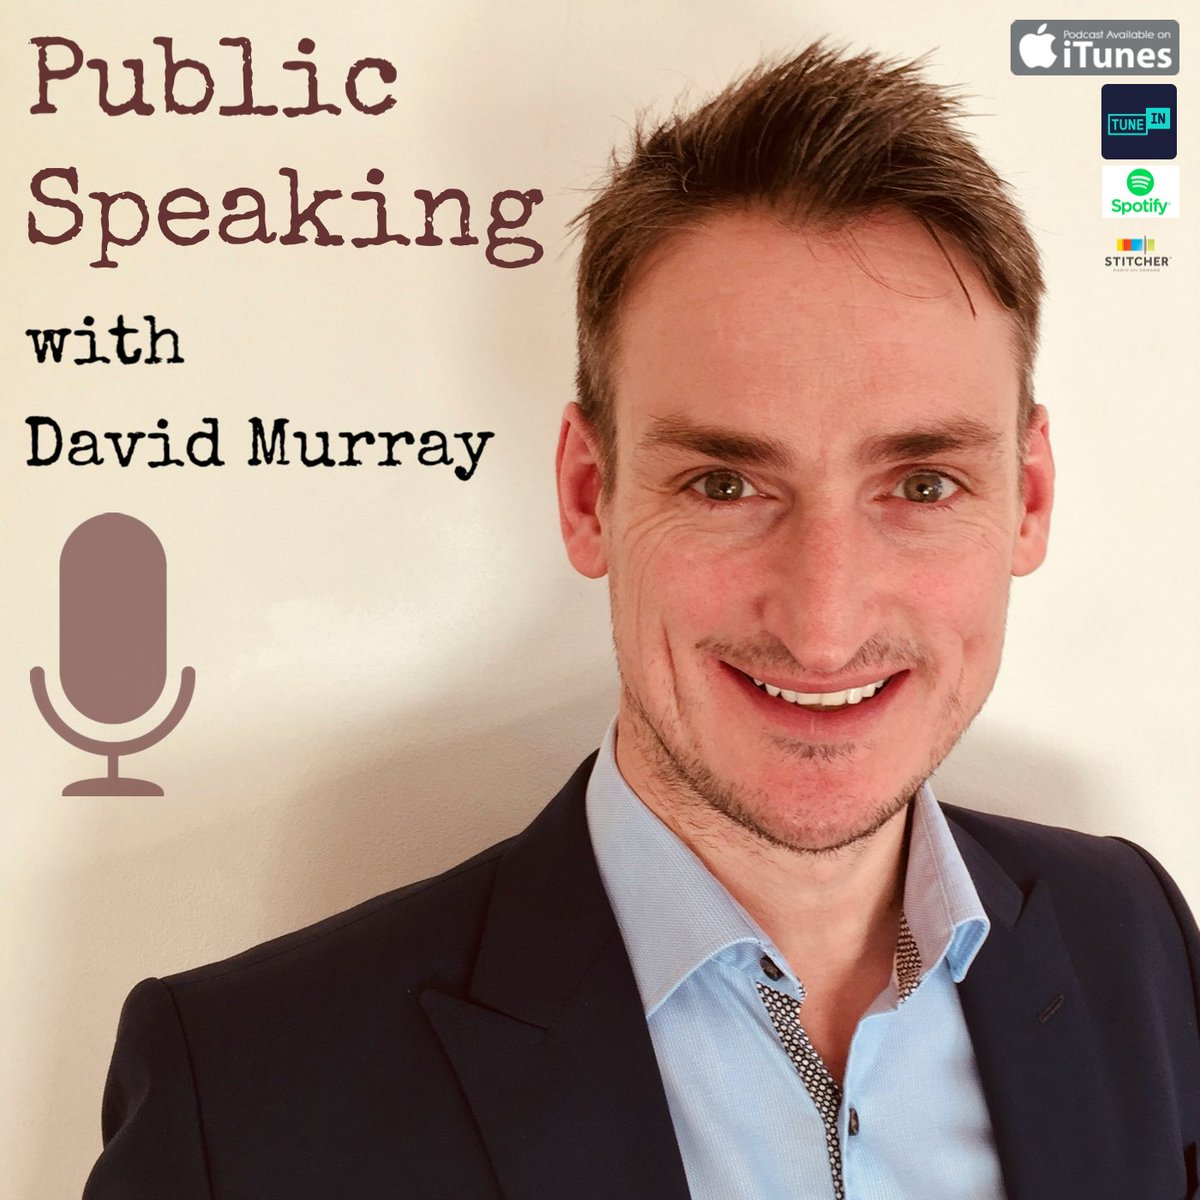 Delivering a speech or presentation this week? Share your message with confidence and flair by listening to the #publicspeaking podcast show. How to 'Calm the nerves' when public speaking! http://ow.ly/DGnF50y99CC #communicatewithconfidence pic.twitter.com/37pZCp0Flj